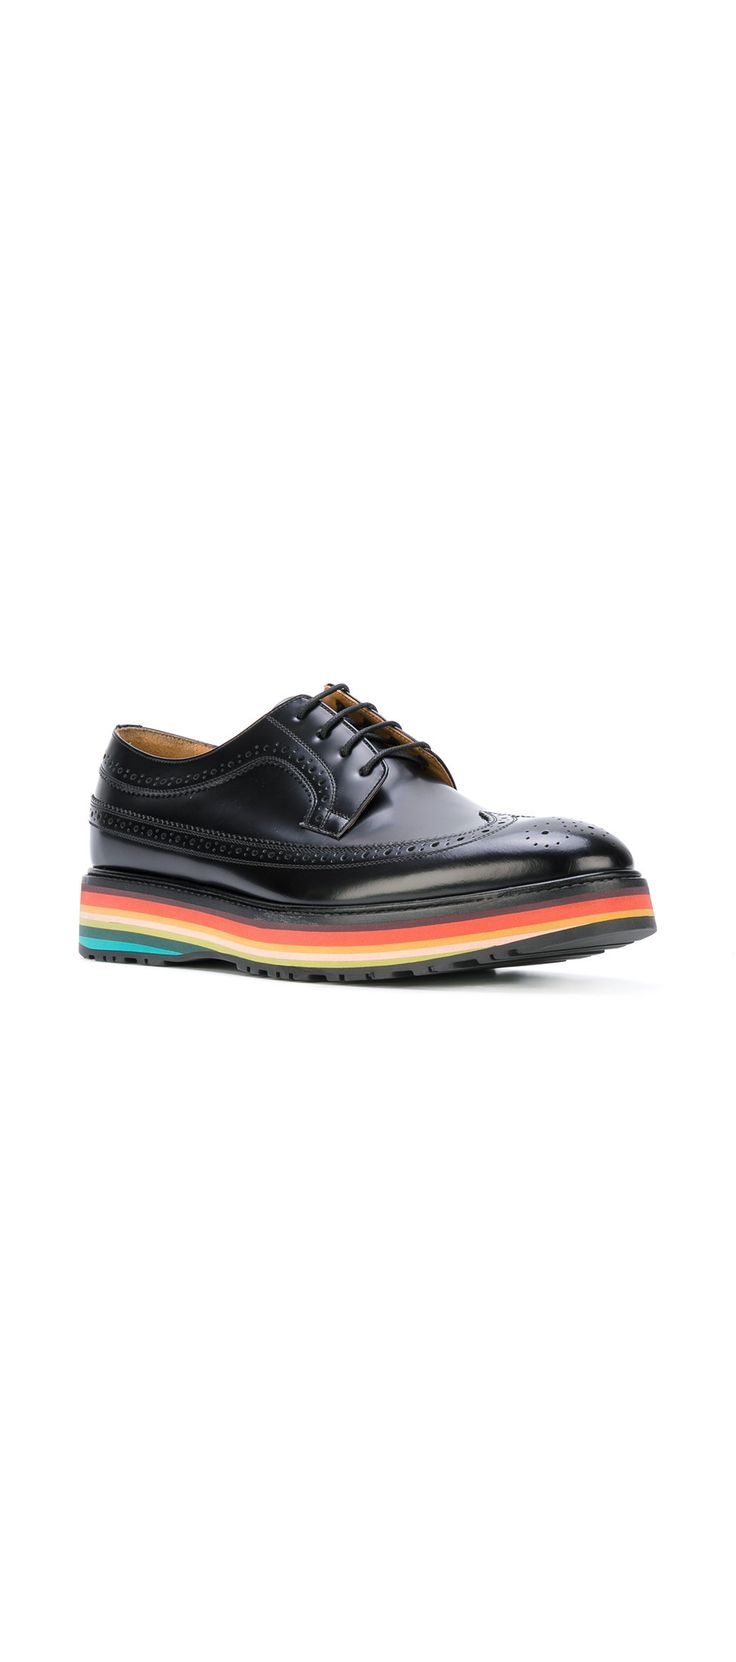 PS BY PAUL SMITH striped platform brogues, explore the latest new season arrivals on Farfetch.